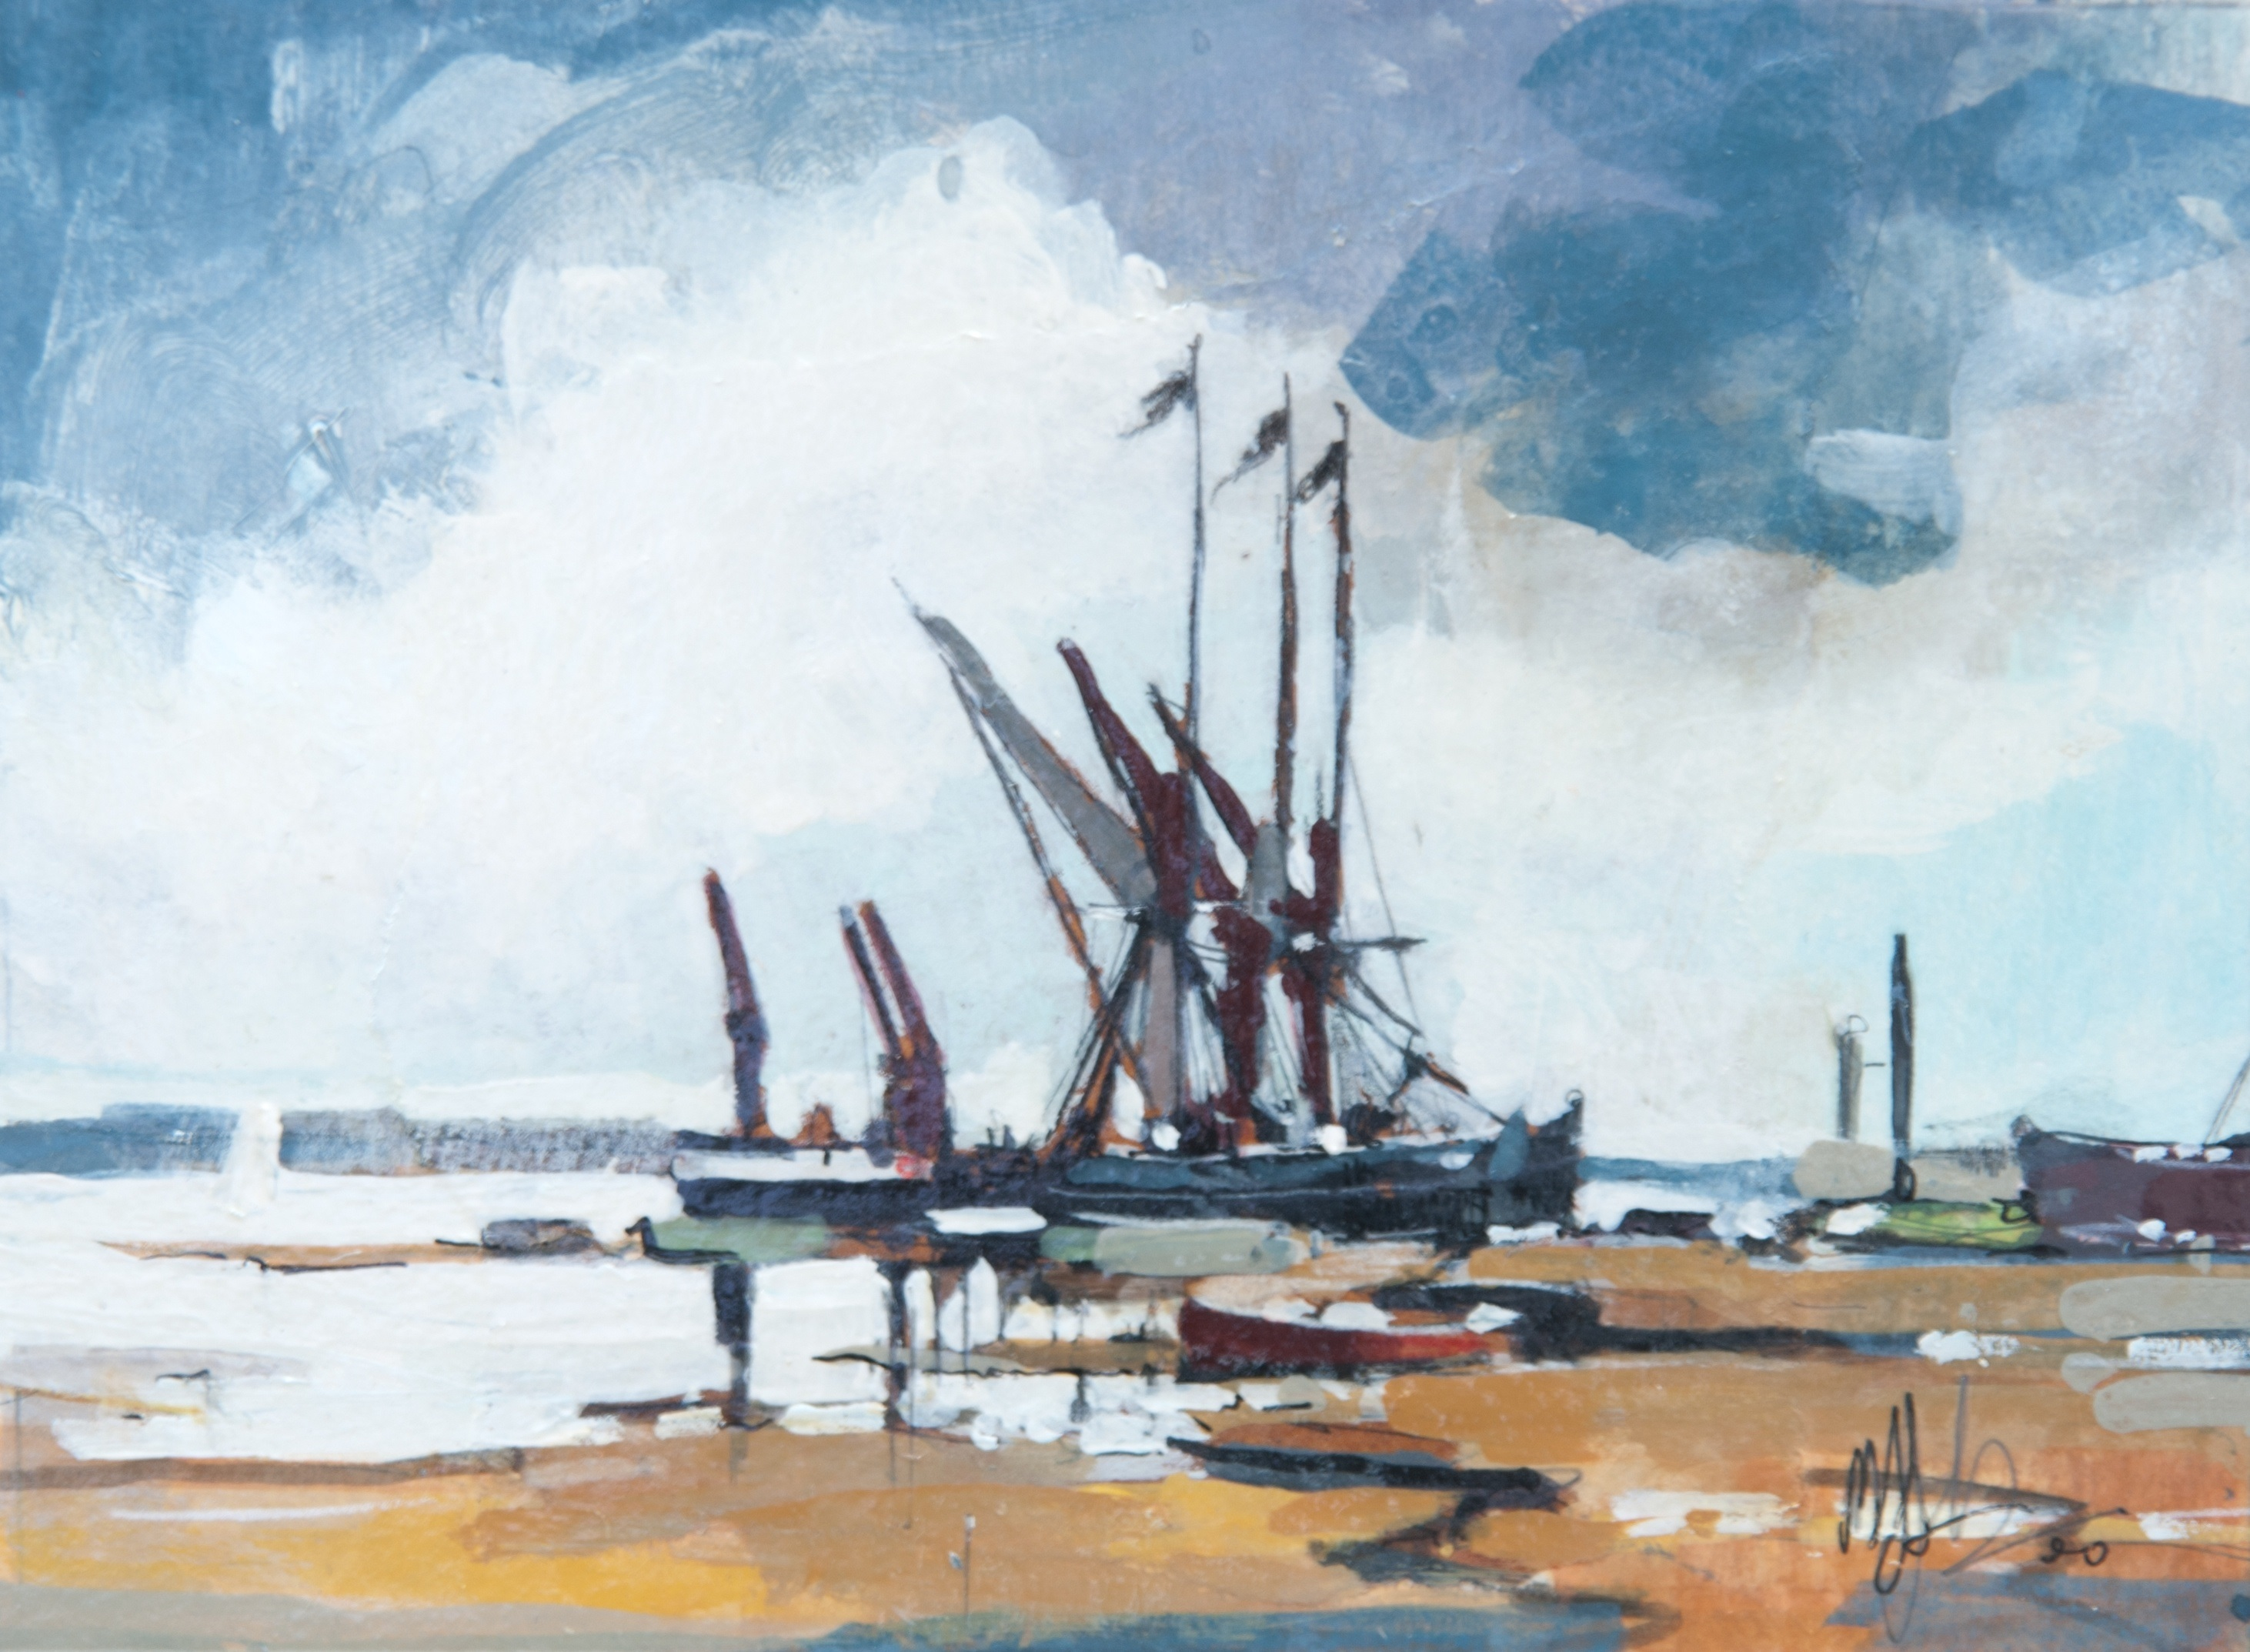 'Fishing Boats, Low Tide, Sketch' by artist Malcolm Cheape